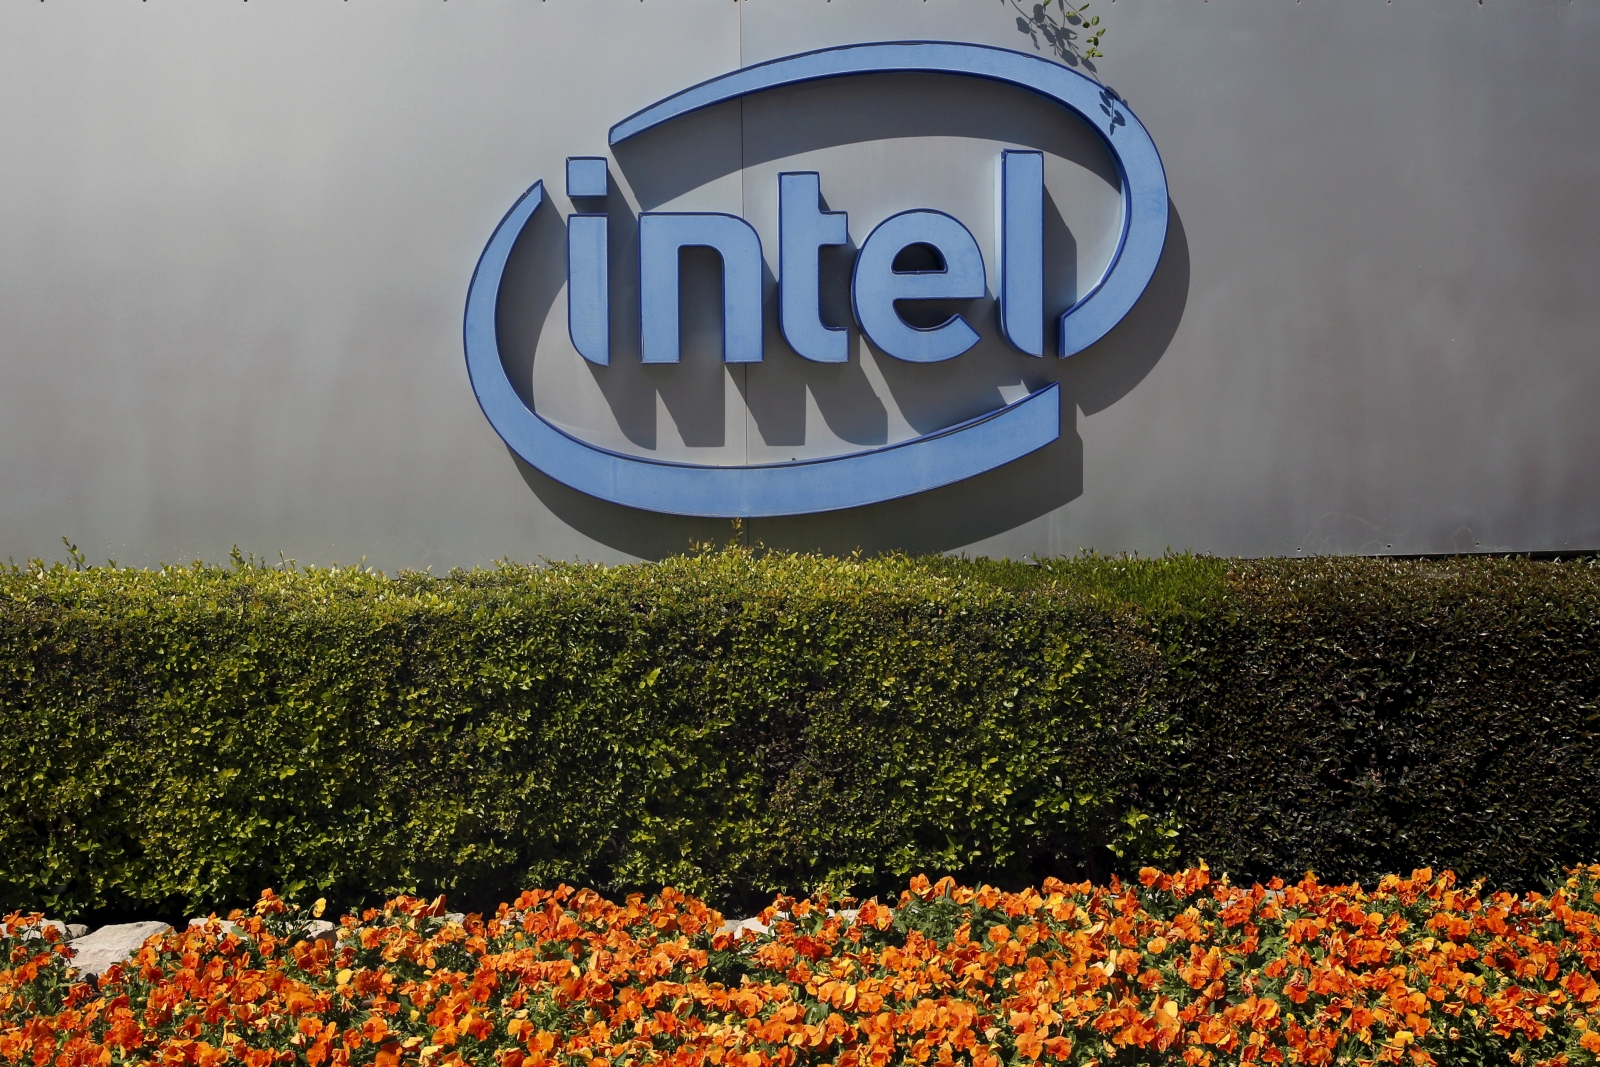 Intel buys MobilEye for a cool $15.3 billion